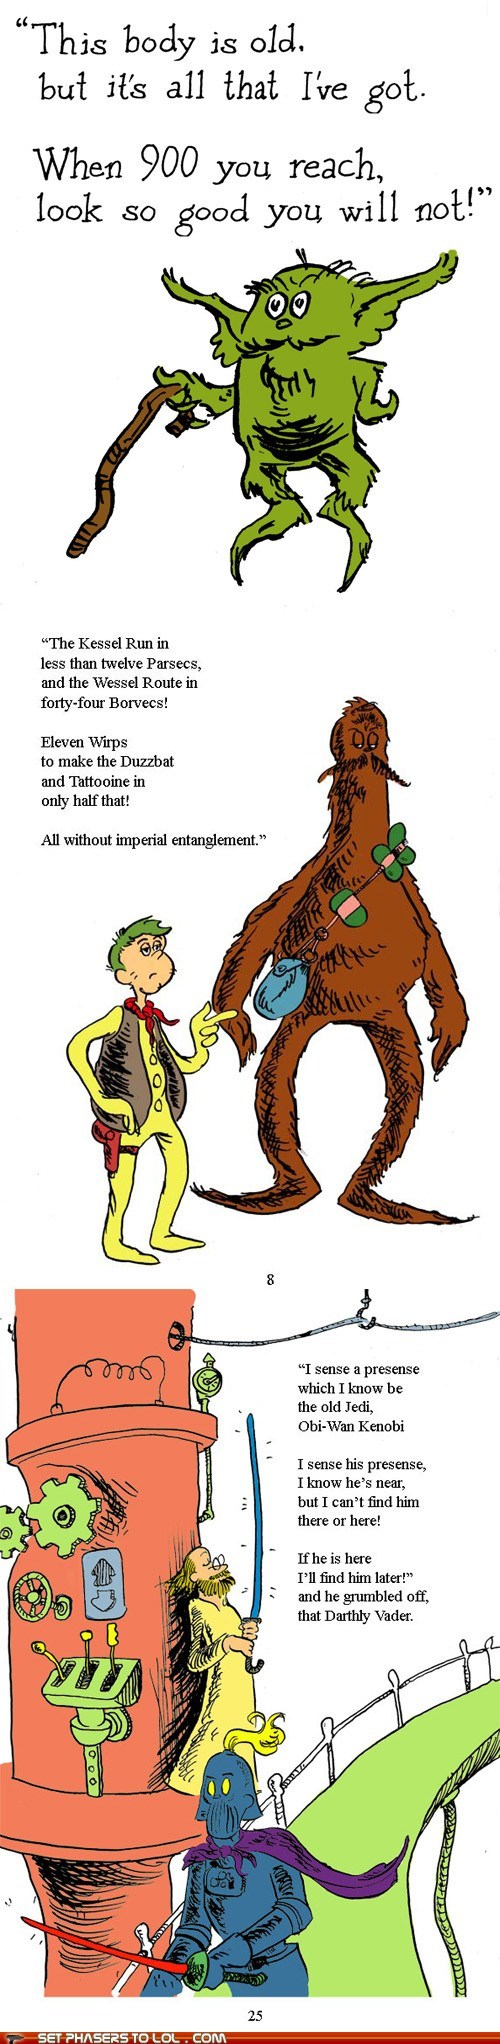 best of the week,chewbacca,childrens book,doctor seuss,Han Solo,rhyming,star wars,yoda